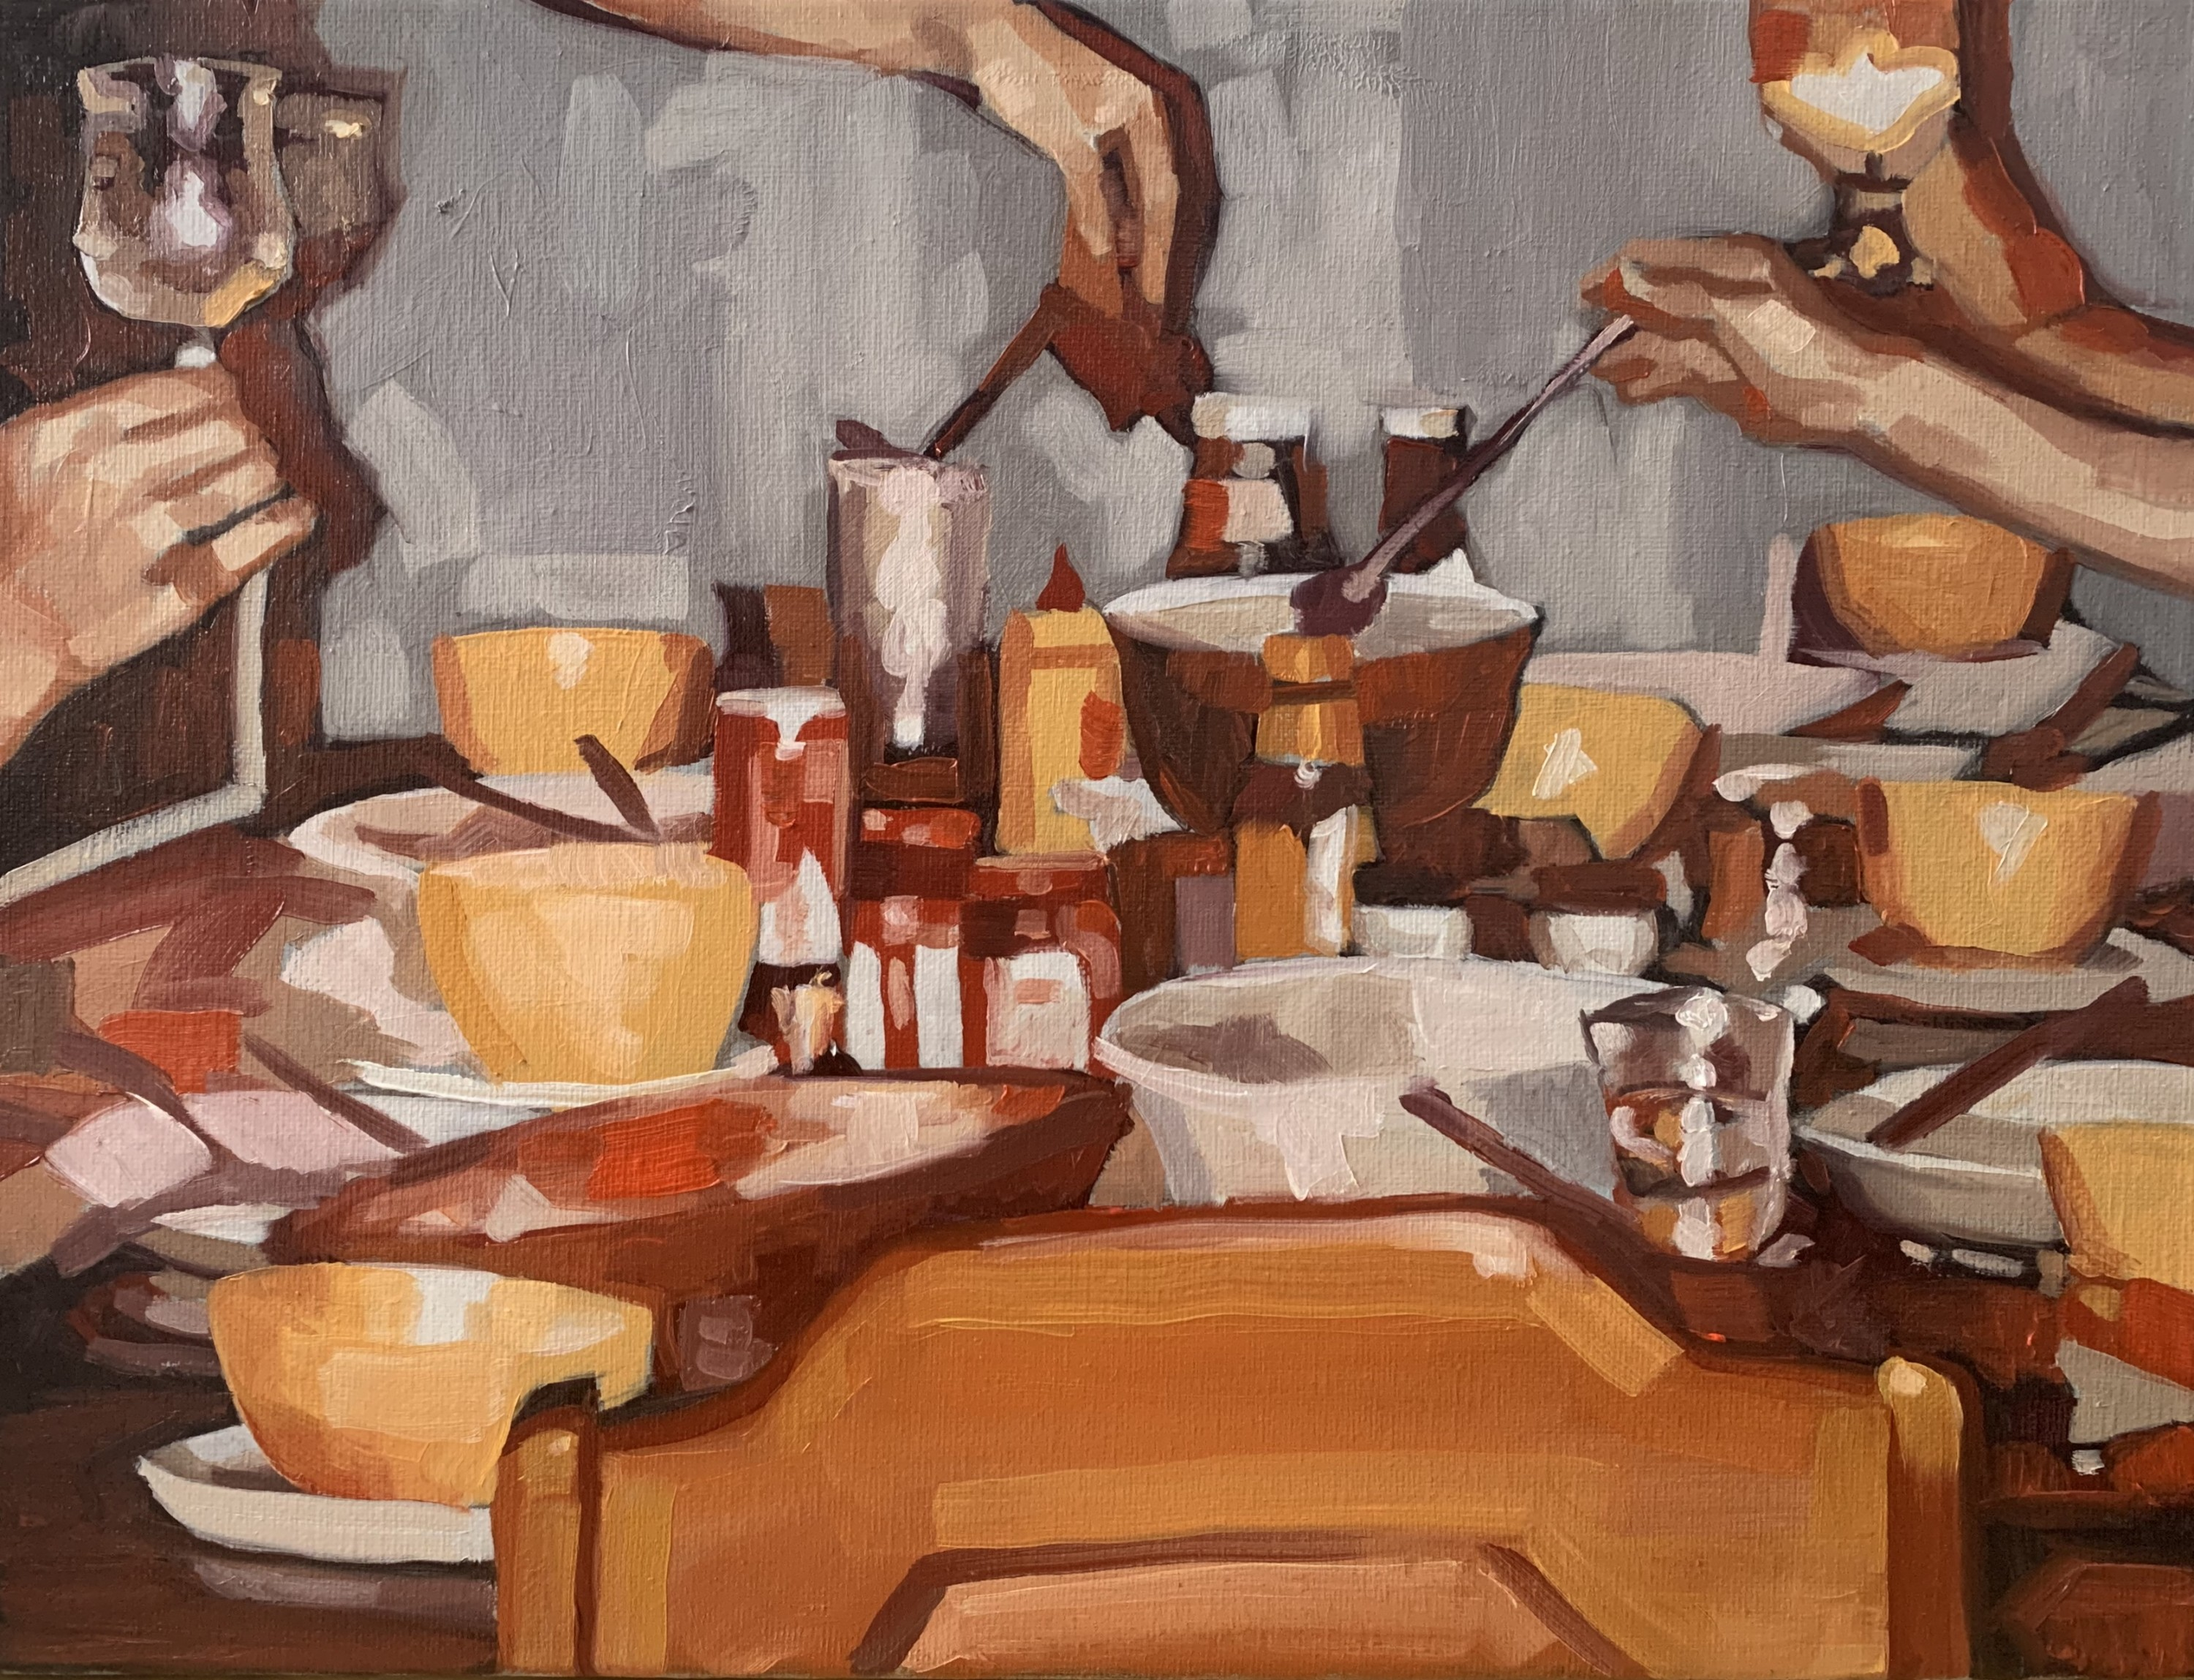 There is a table full of bowls, plates, glasses, and food with two hands reaching to serve themselves food and two hands holding up glasses to a toast. The whole painting is busy and warm using thick brush strokes.